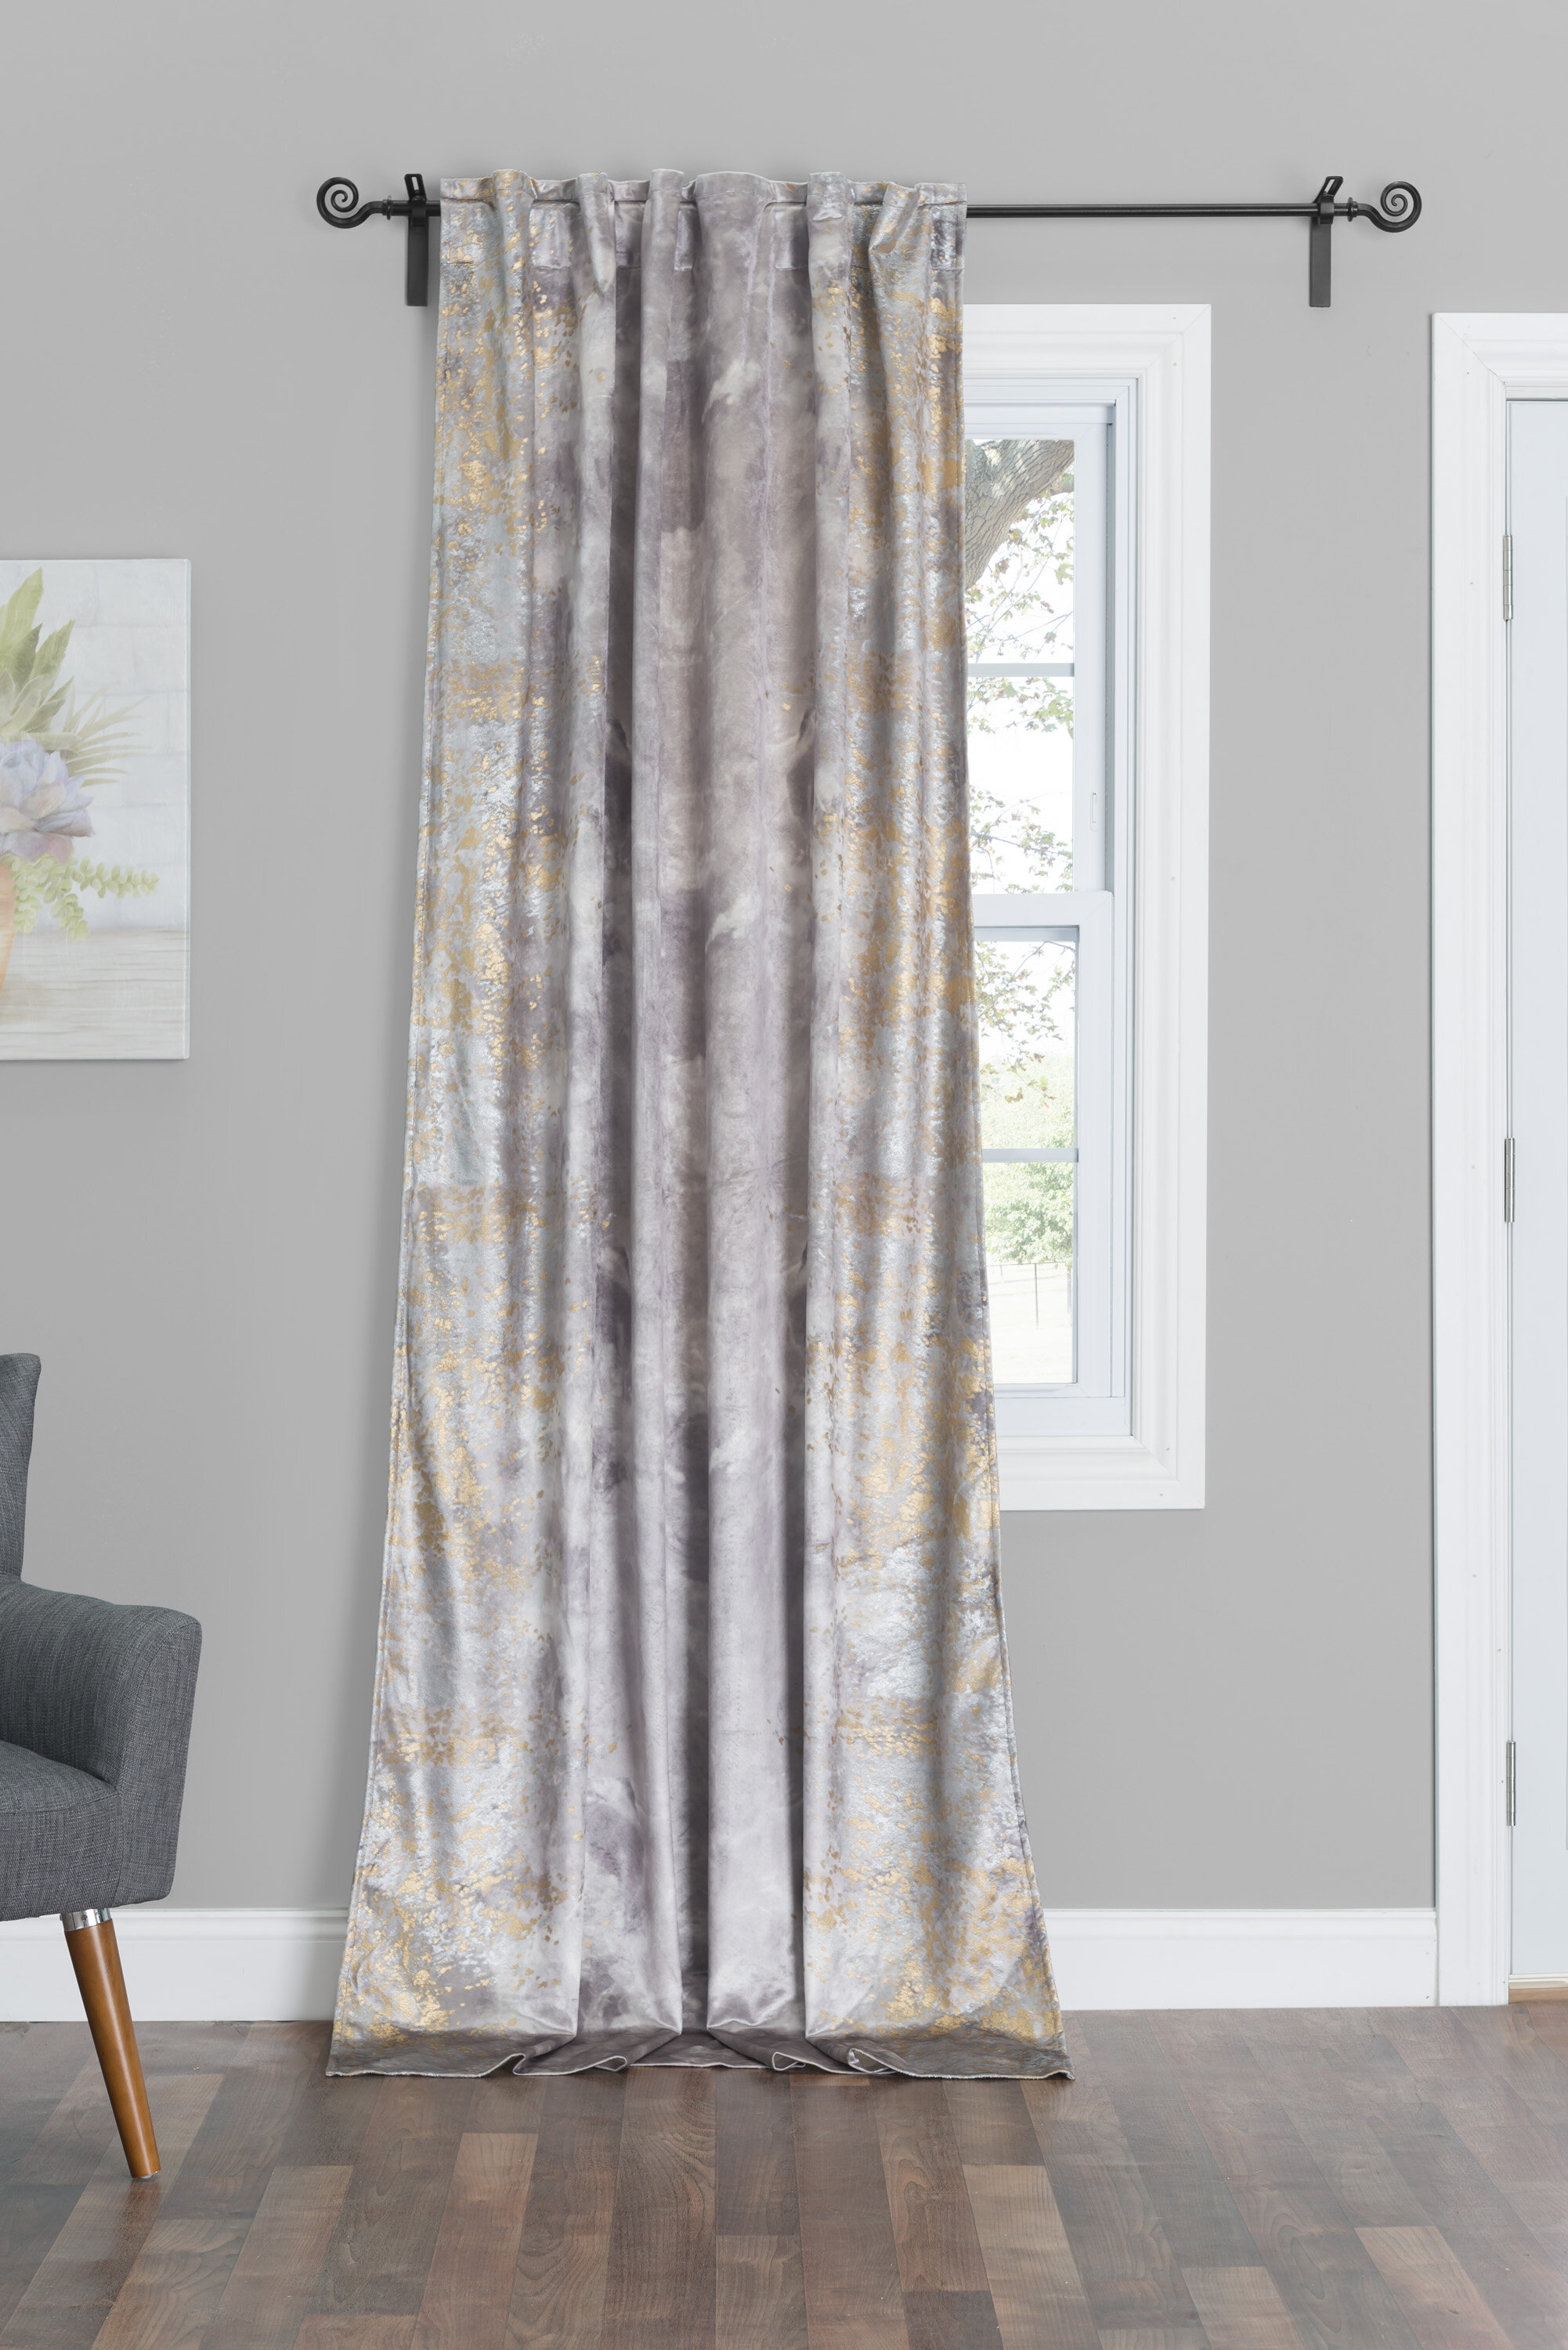 Cloud9 Design Zen Abstract Room Darkening Rod Pocket Single Pertaining To Velvet Dream Silver Curtain Panel Pairs (View 19 of 31)